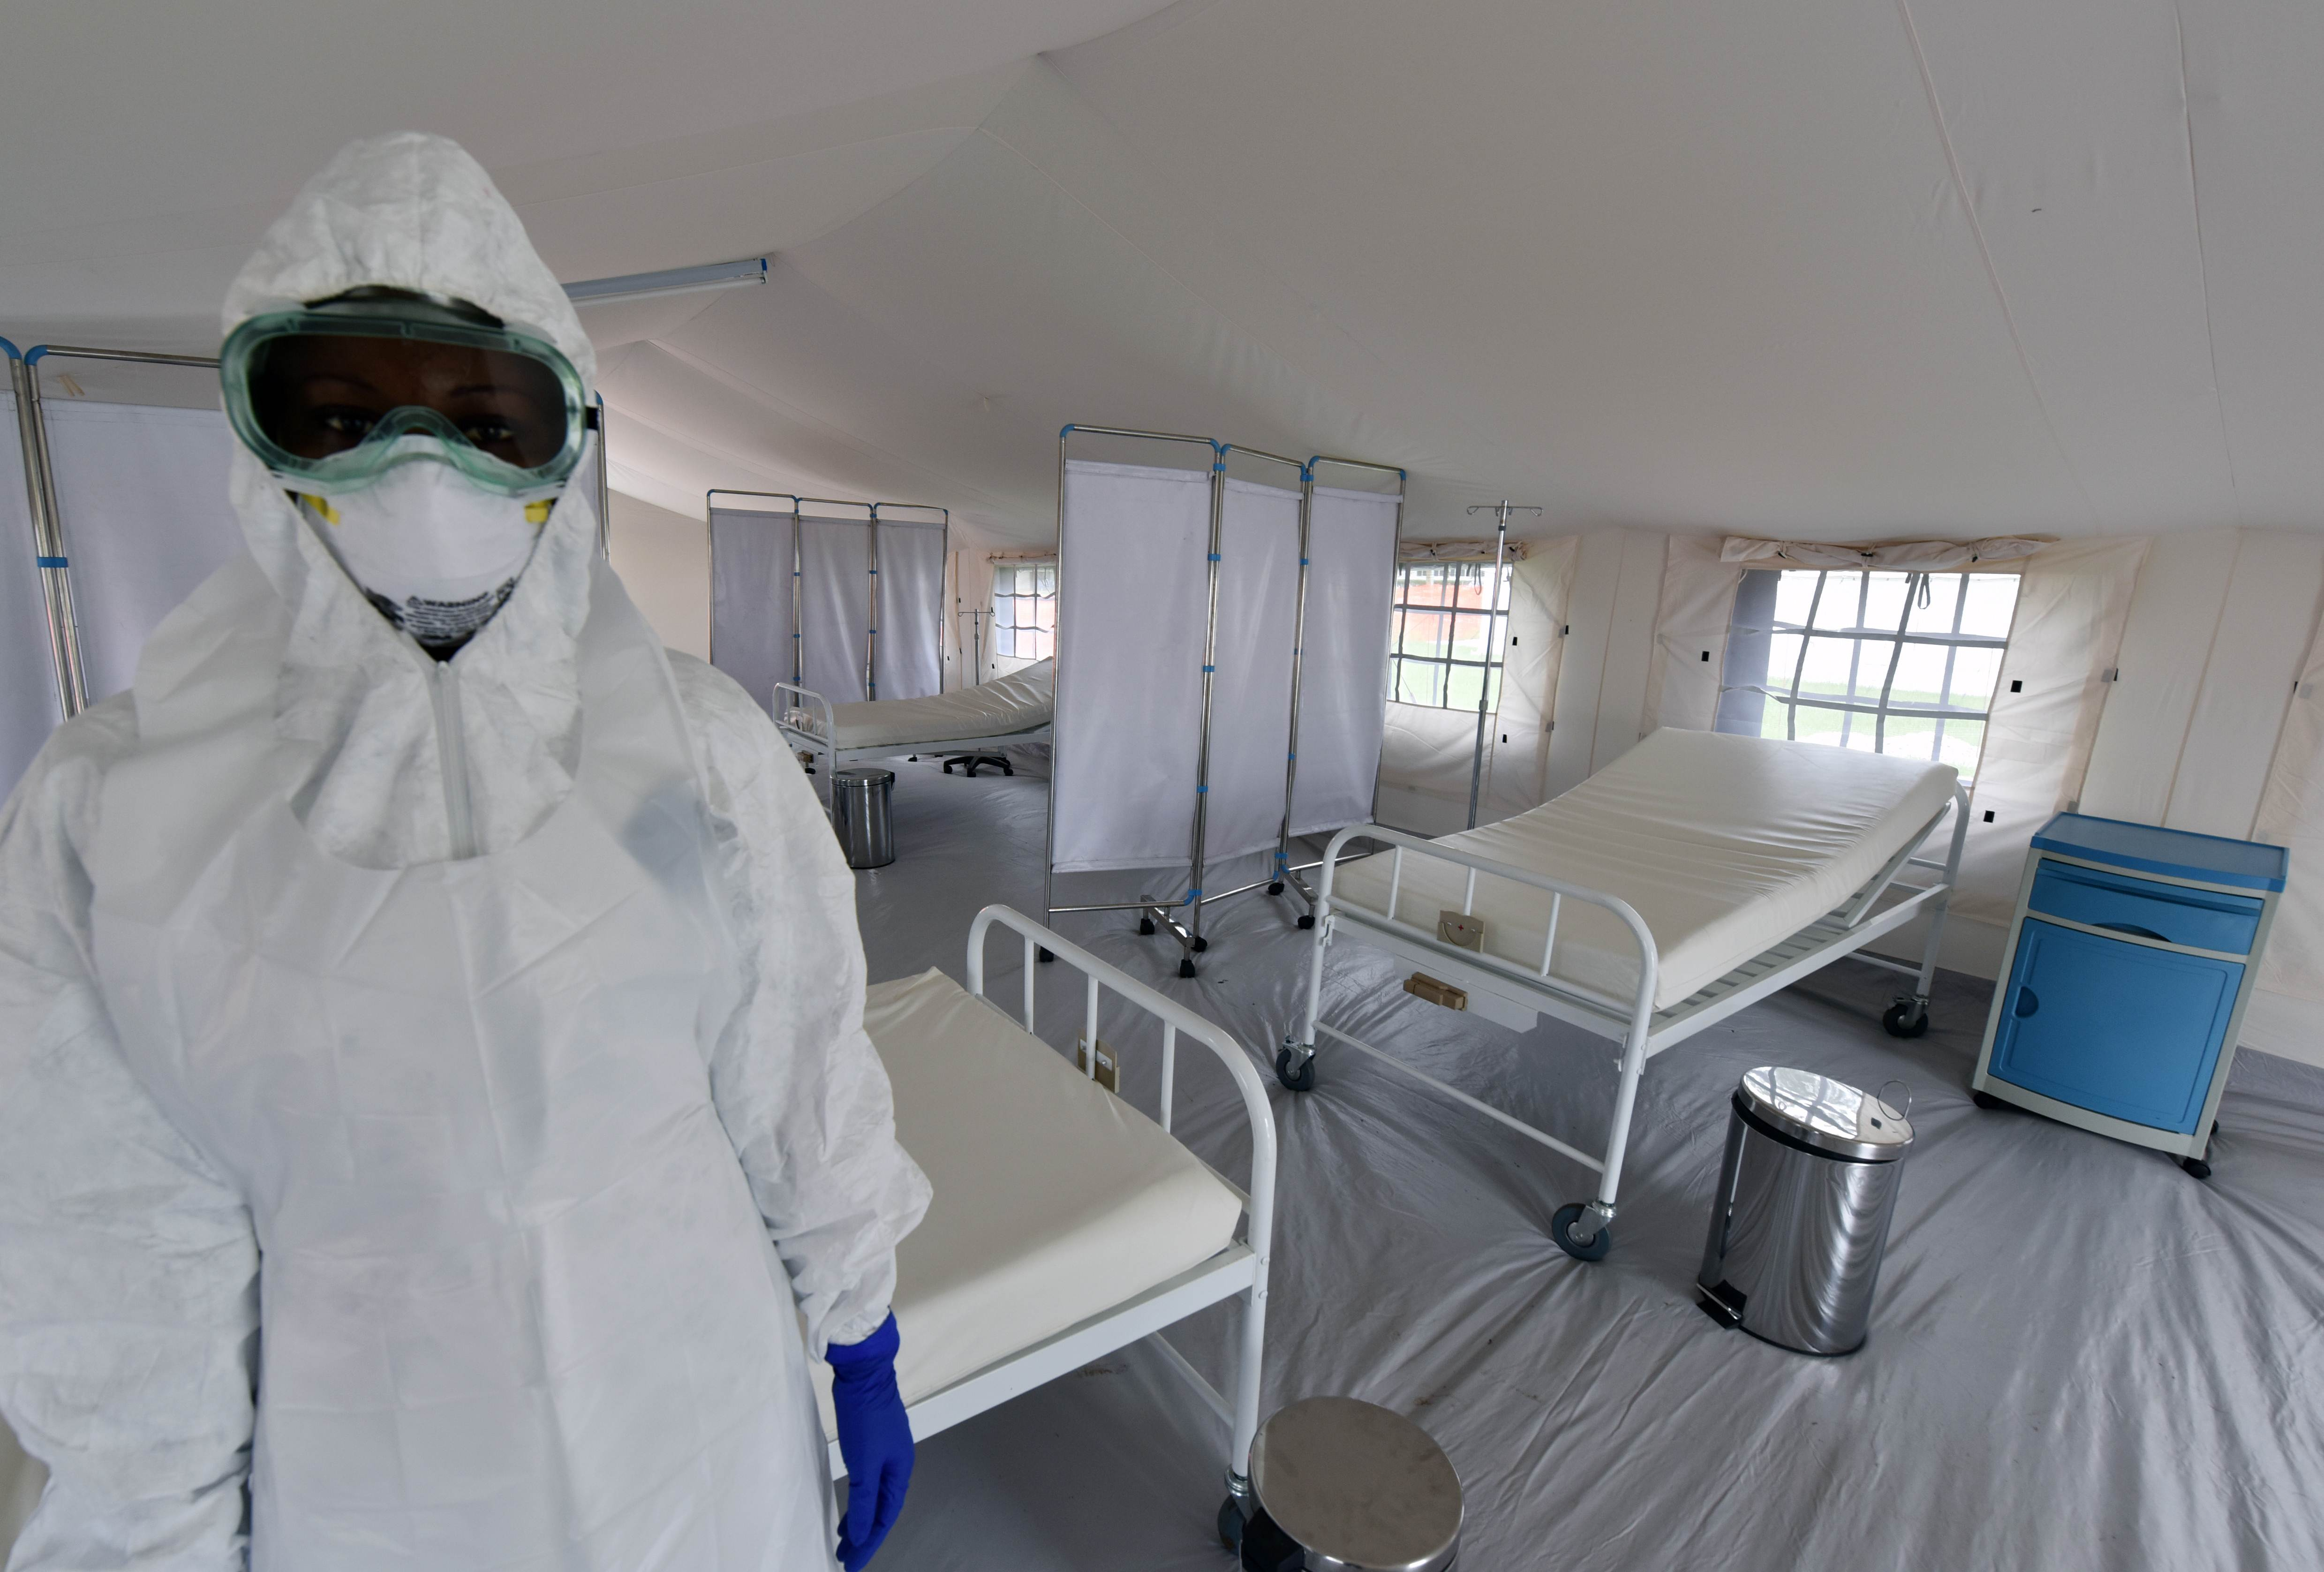 tanzania not sharing information on suspected ebola who